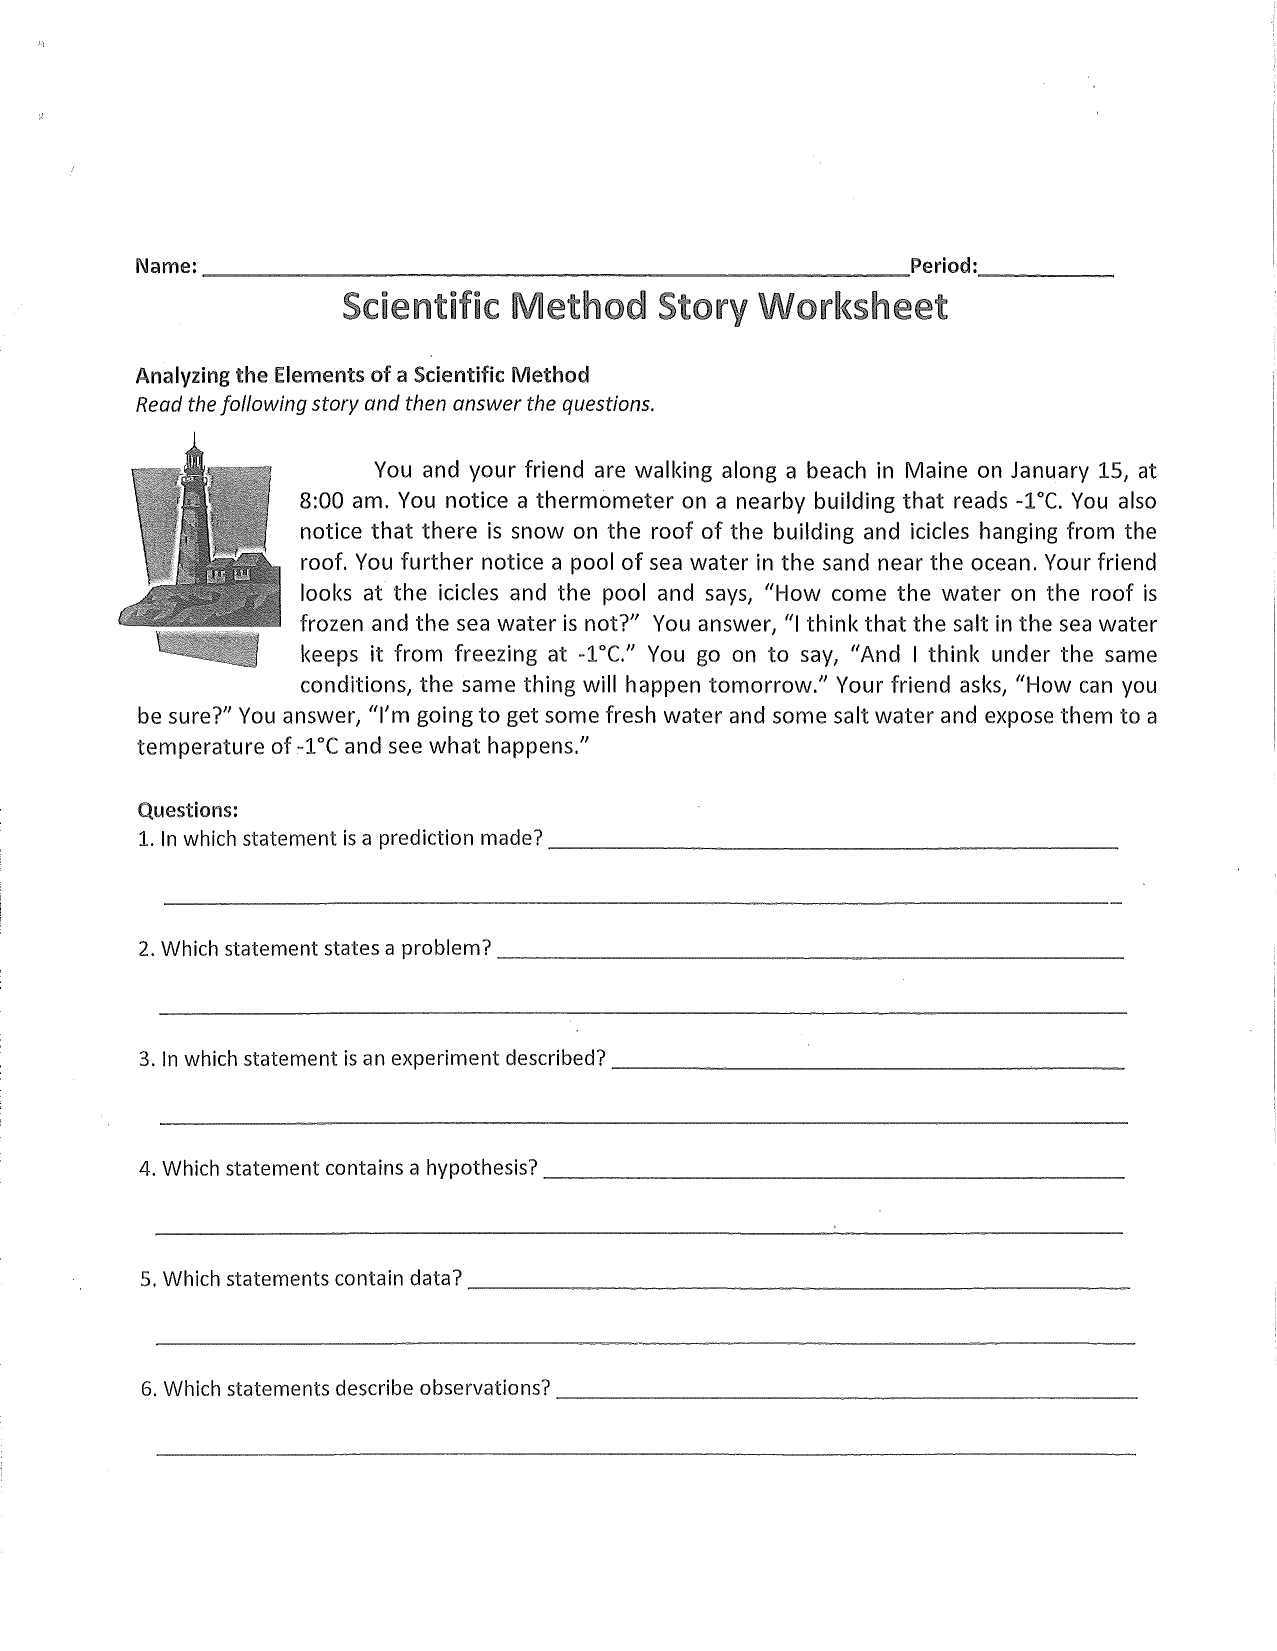 Scientific Method Story Worksheet